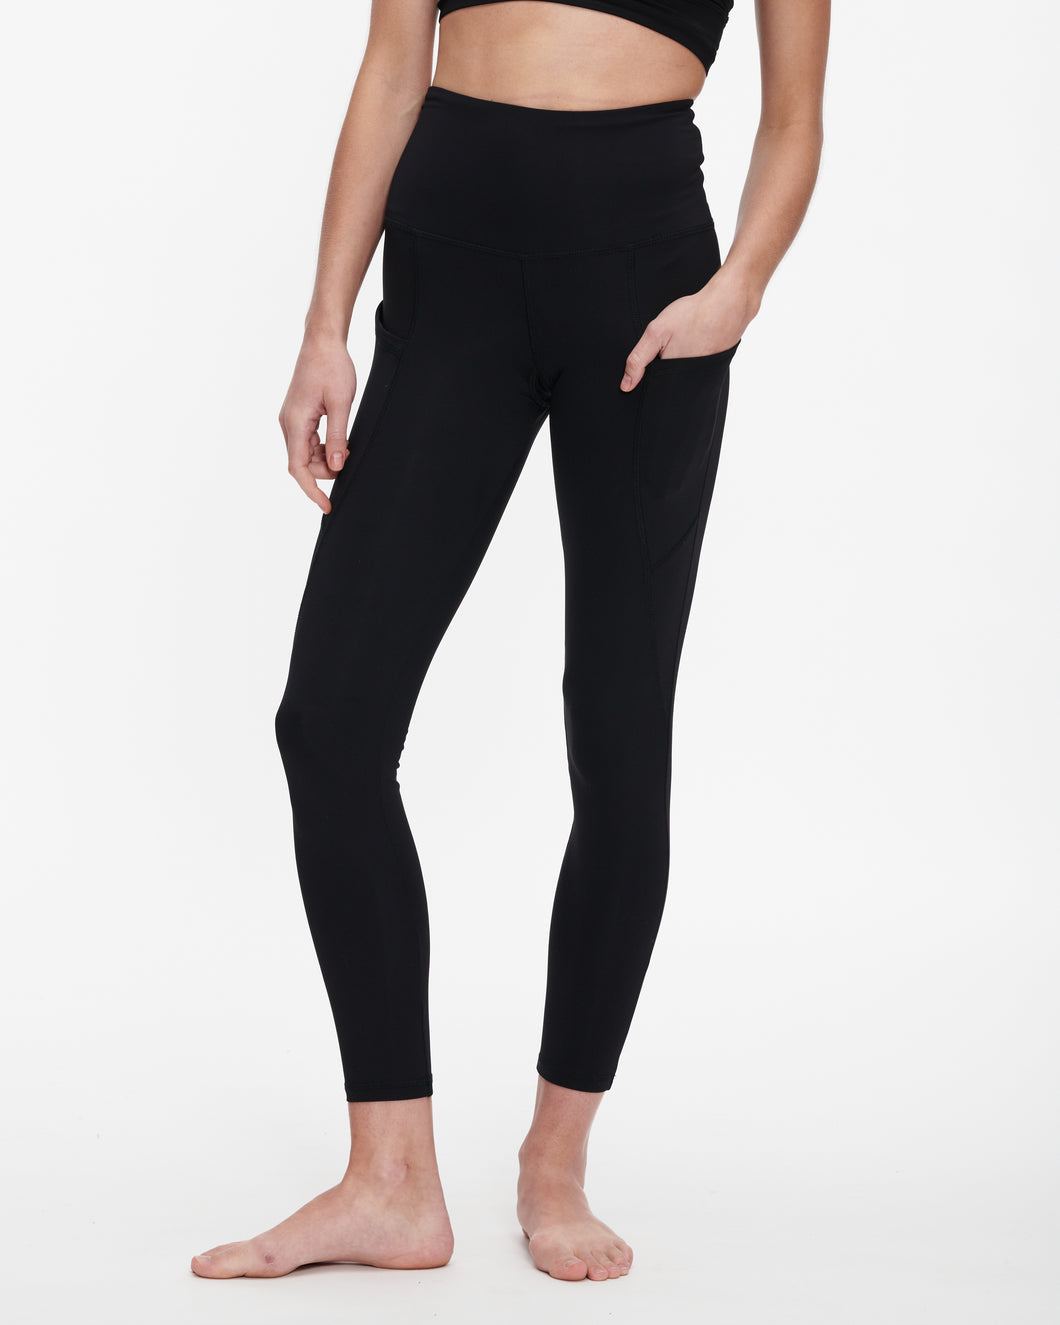 STRUT THIS FLYNN LEGGING